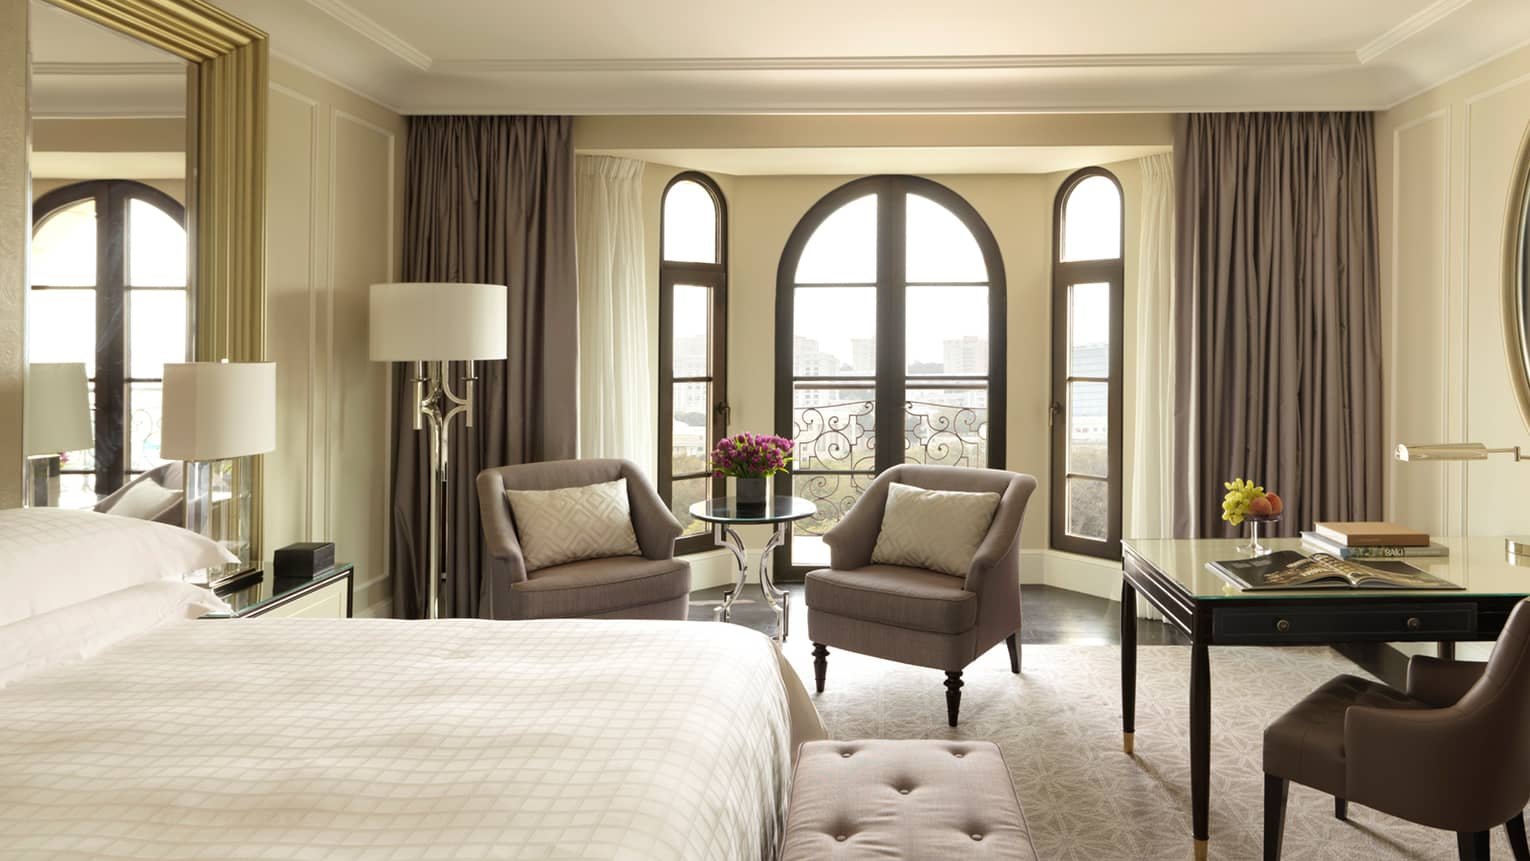 Sunny Deluxe Caspian Room hotel room with arched French doors, two armchairs, desk, bed